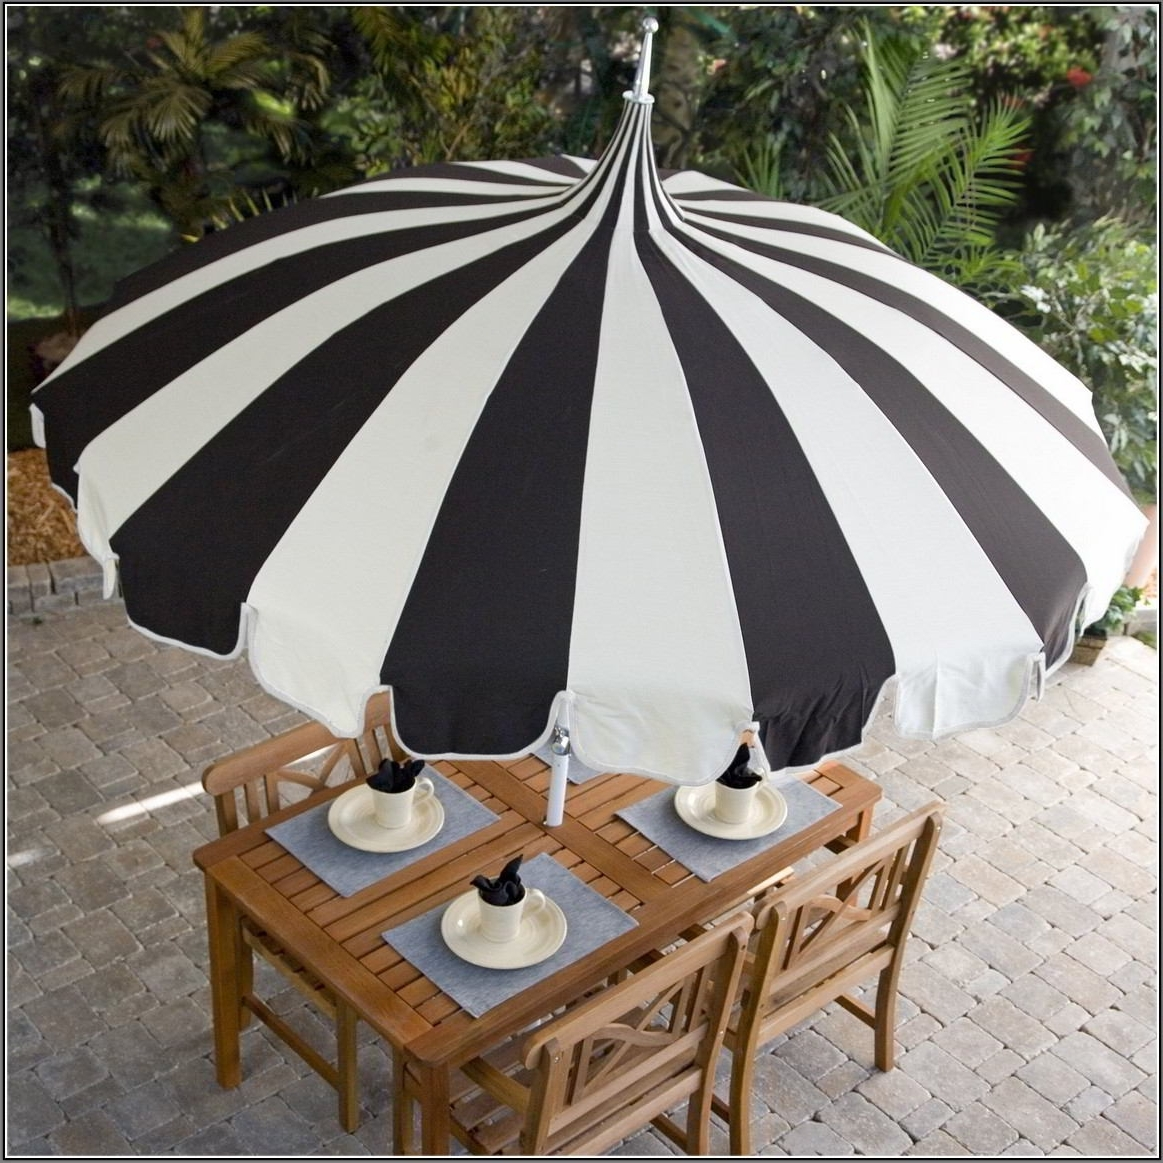 Newest Black And White Garden Patio Umbrellas Decorating (View 16 of 20)